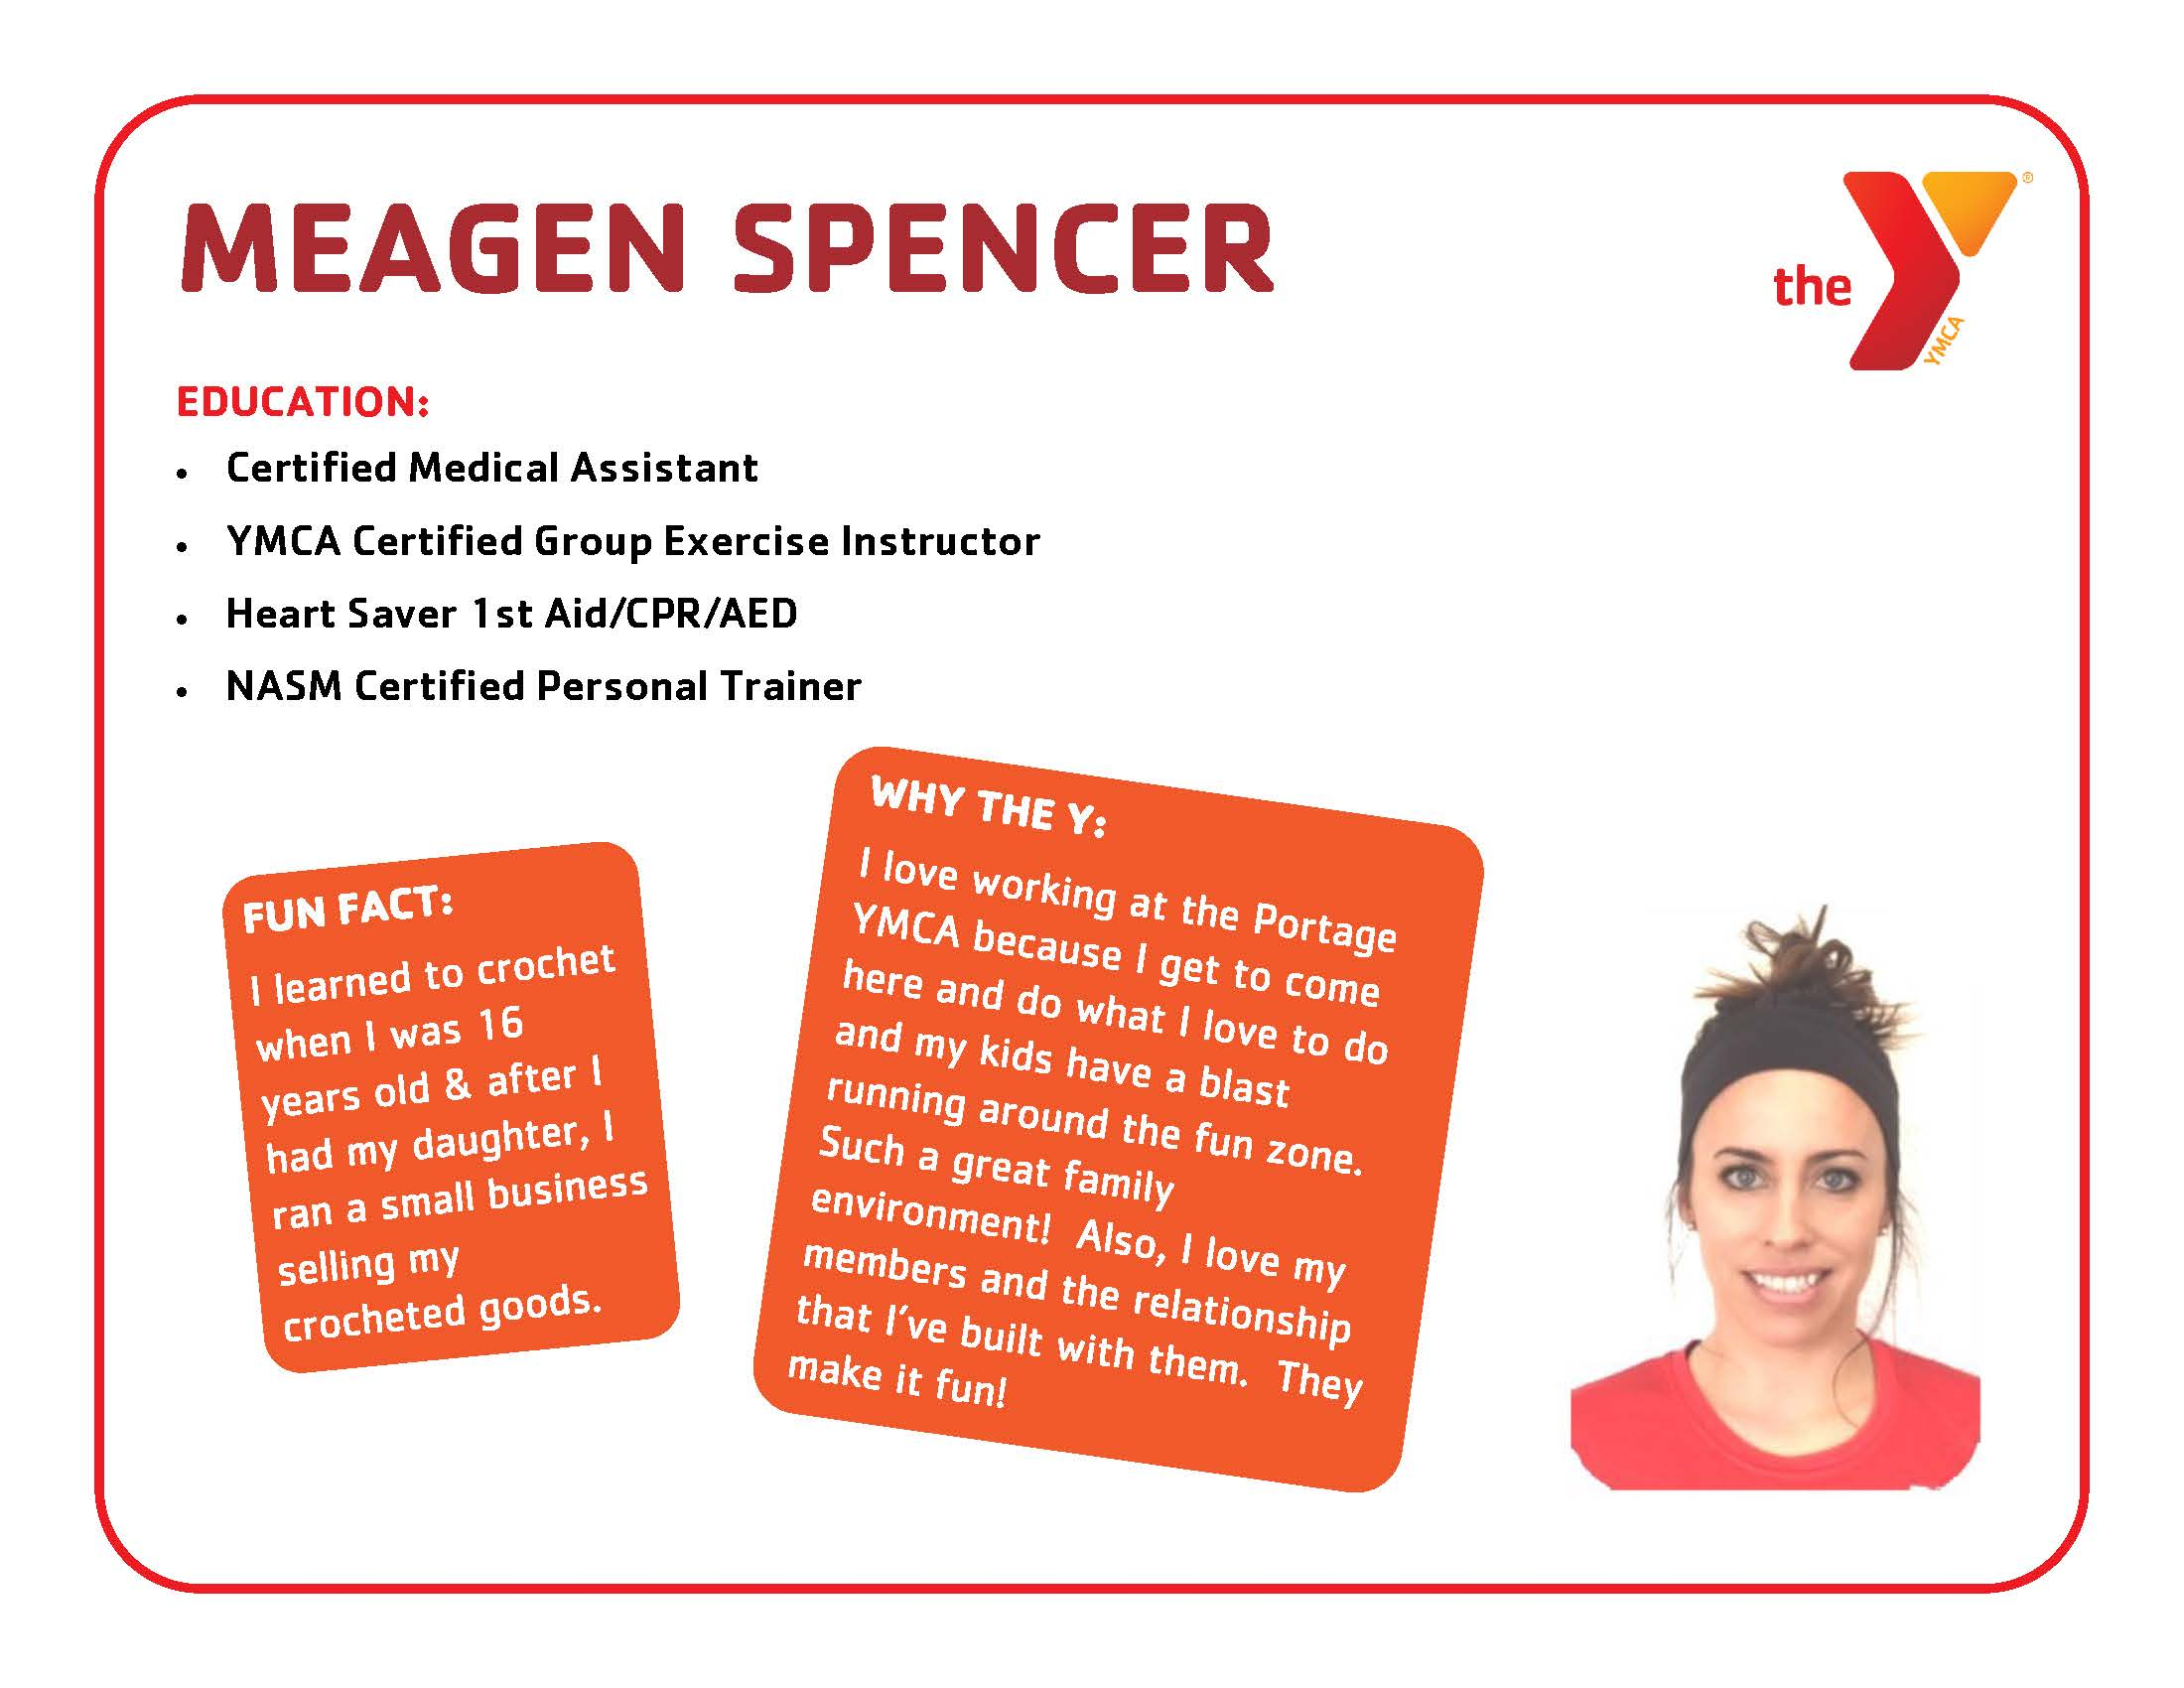 Portage Township Ymca The Y So Much More Meagen Spencer